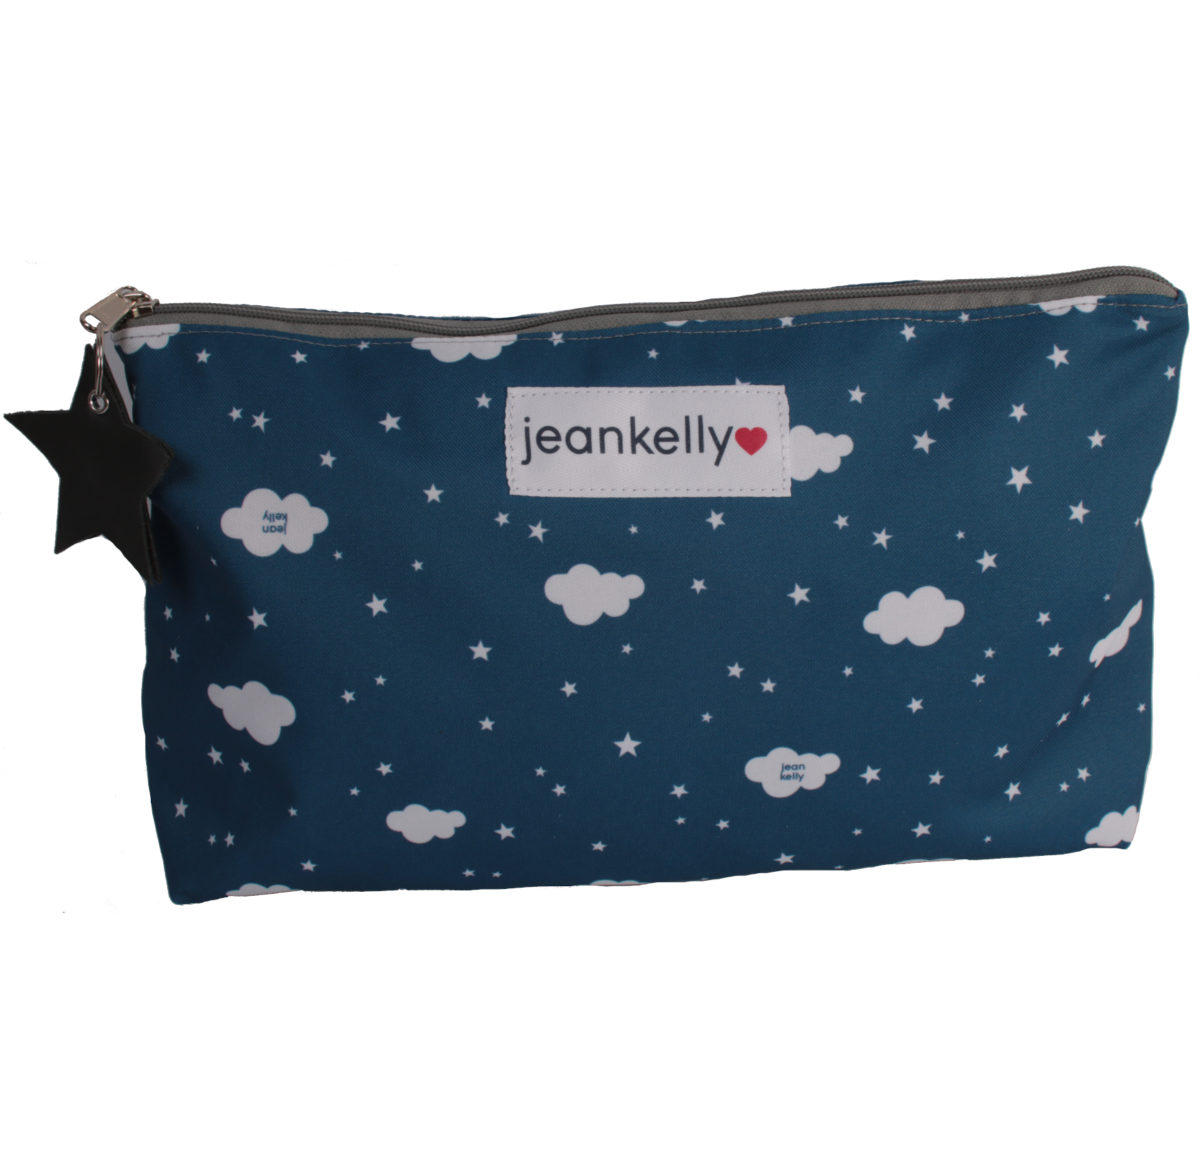 jeankelly_pouch navy